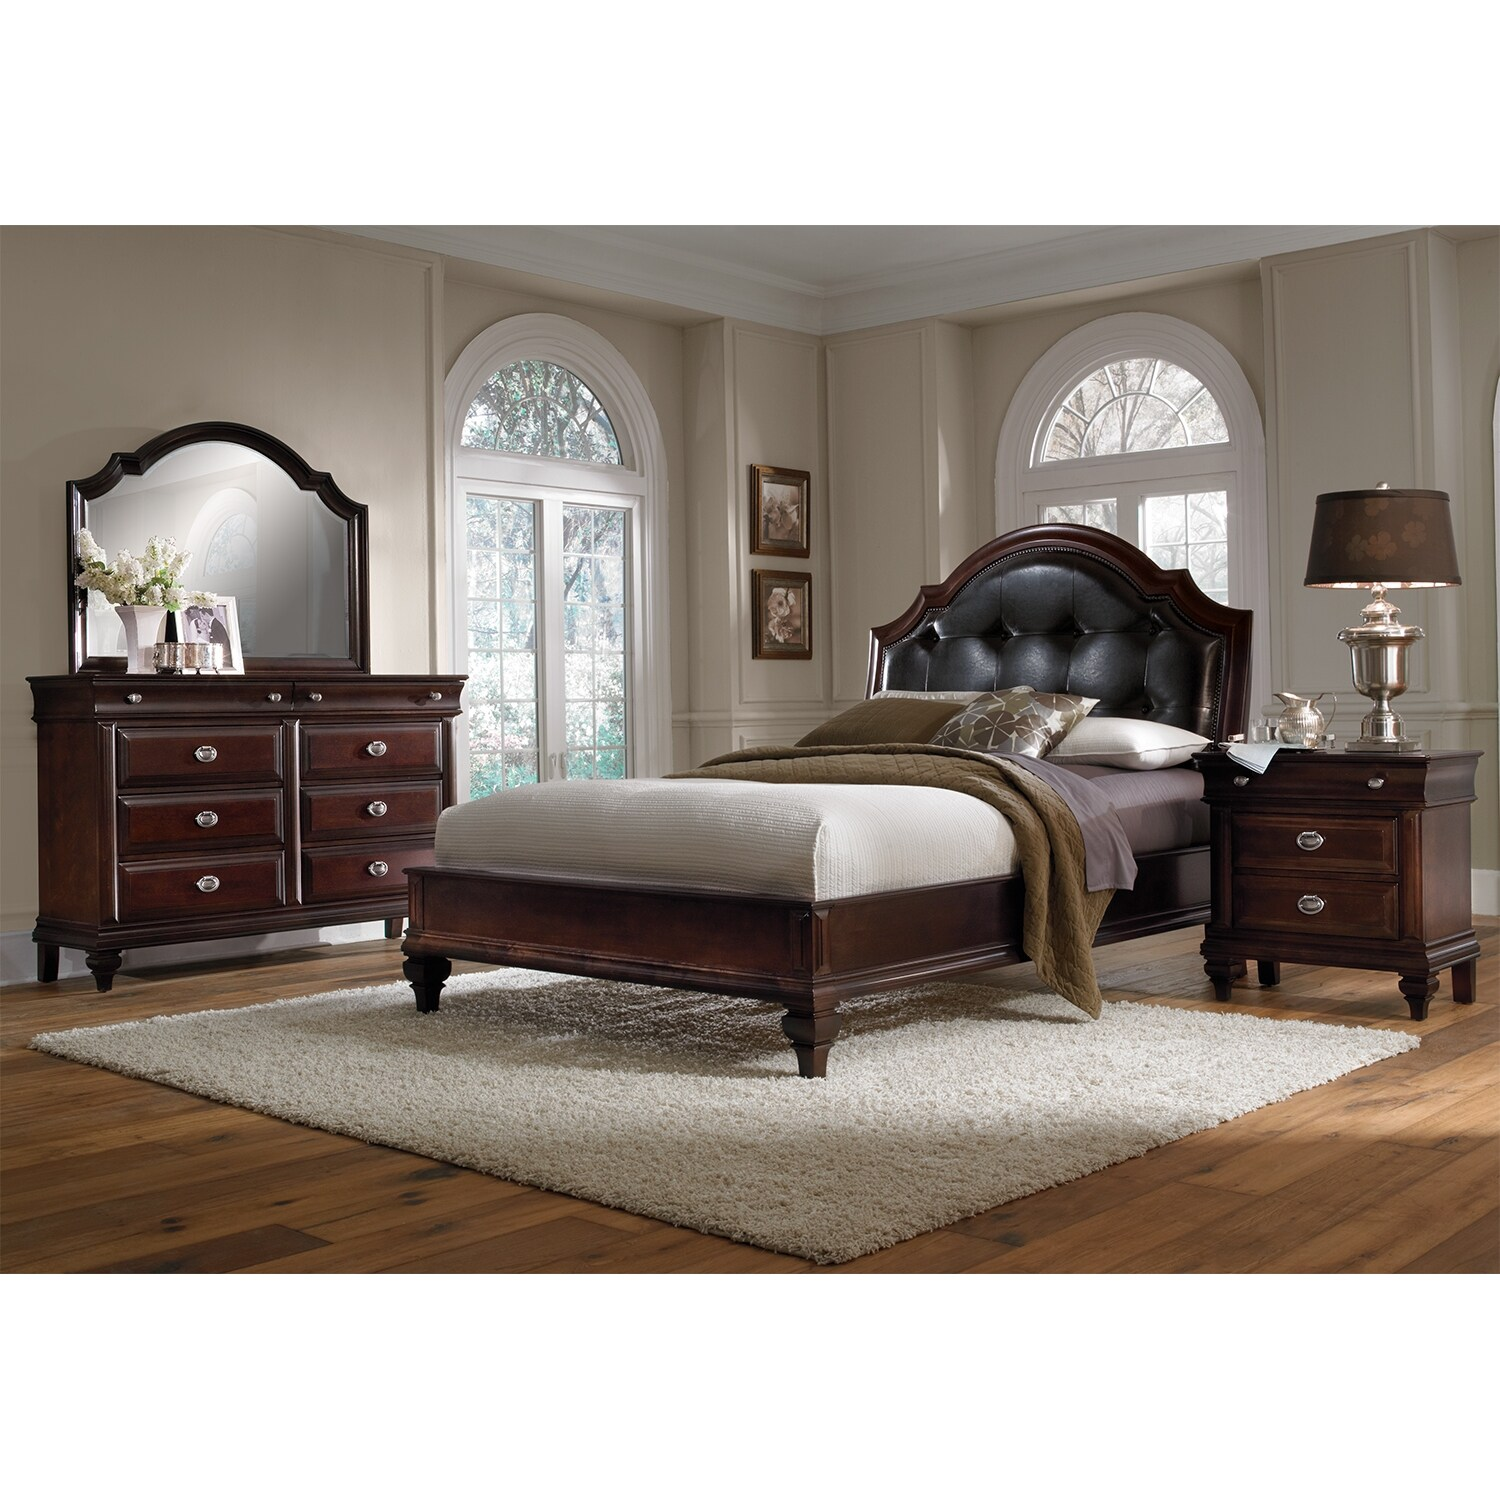 Manhattan 6 Piece Queen Upholstered Bedroom Set   Cherry